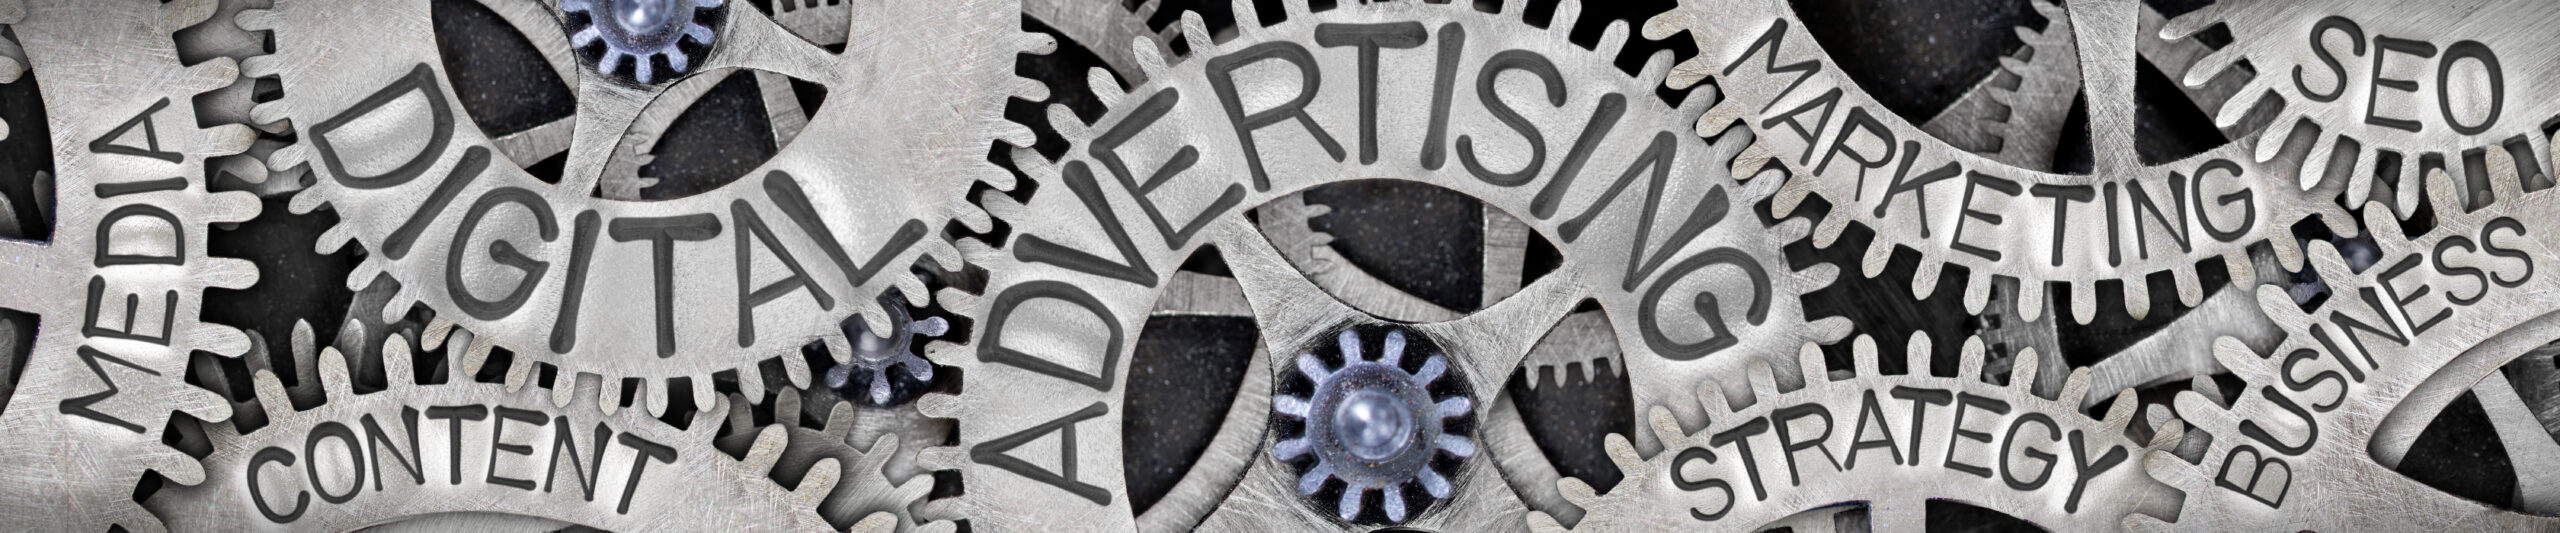 5 Components to Online Advertising are Just Like Print Advertising!